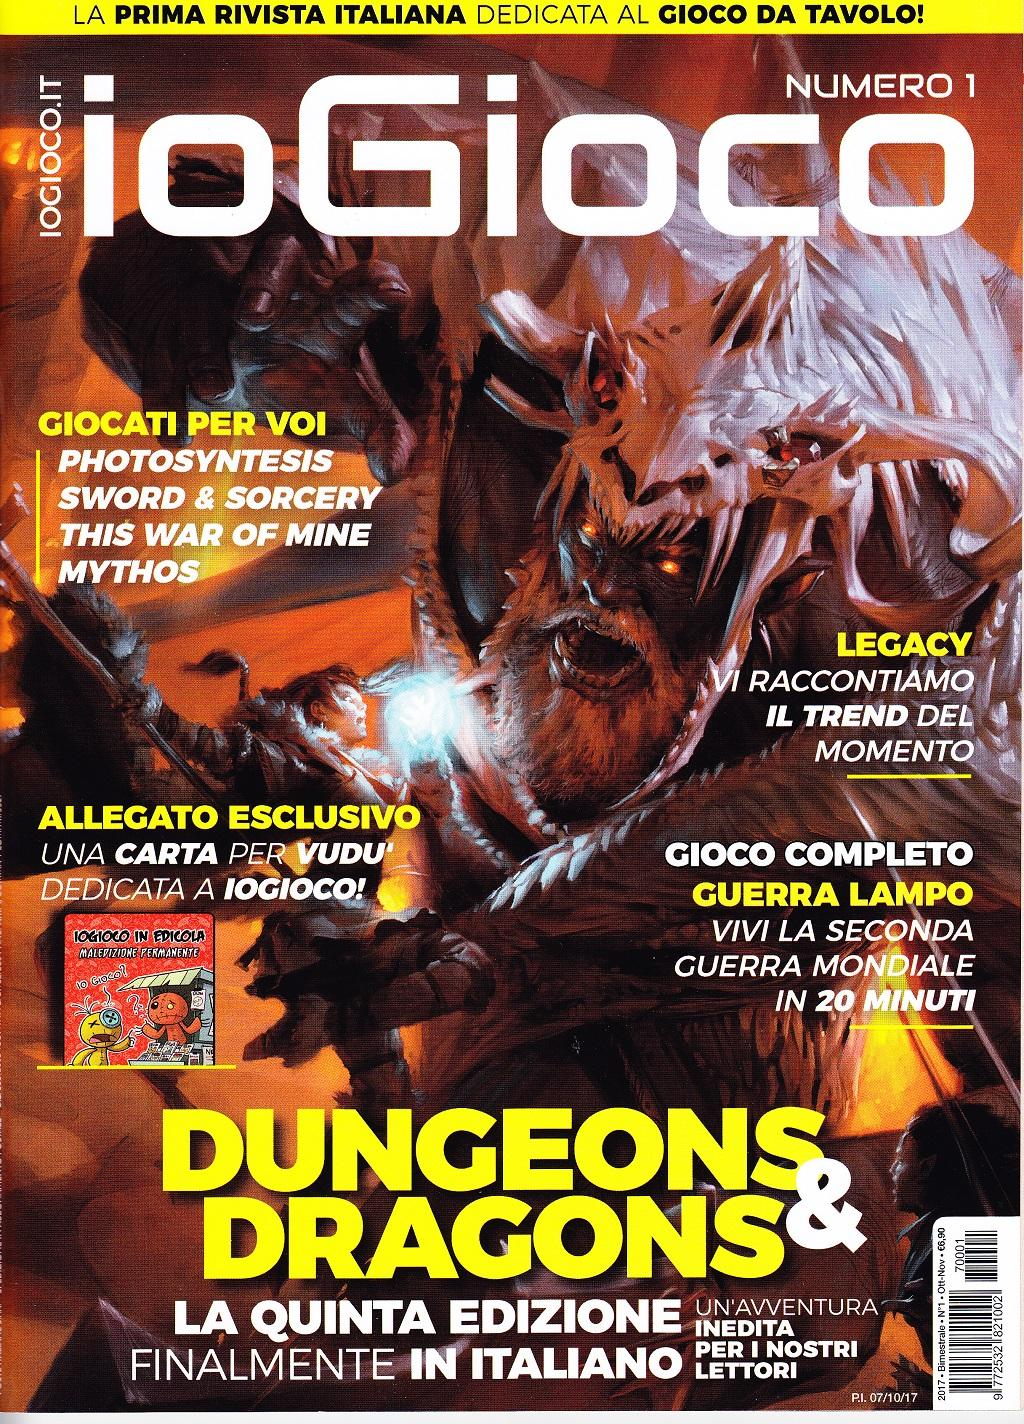 Dungeon & Dragons 5